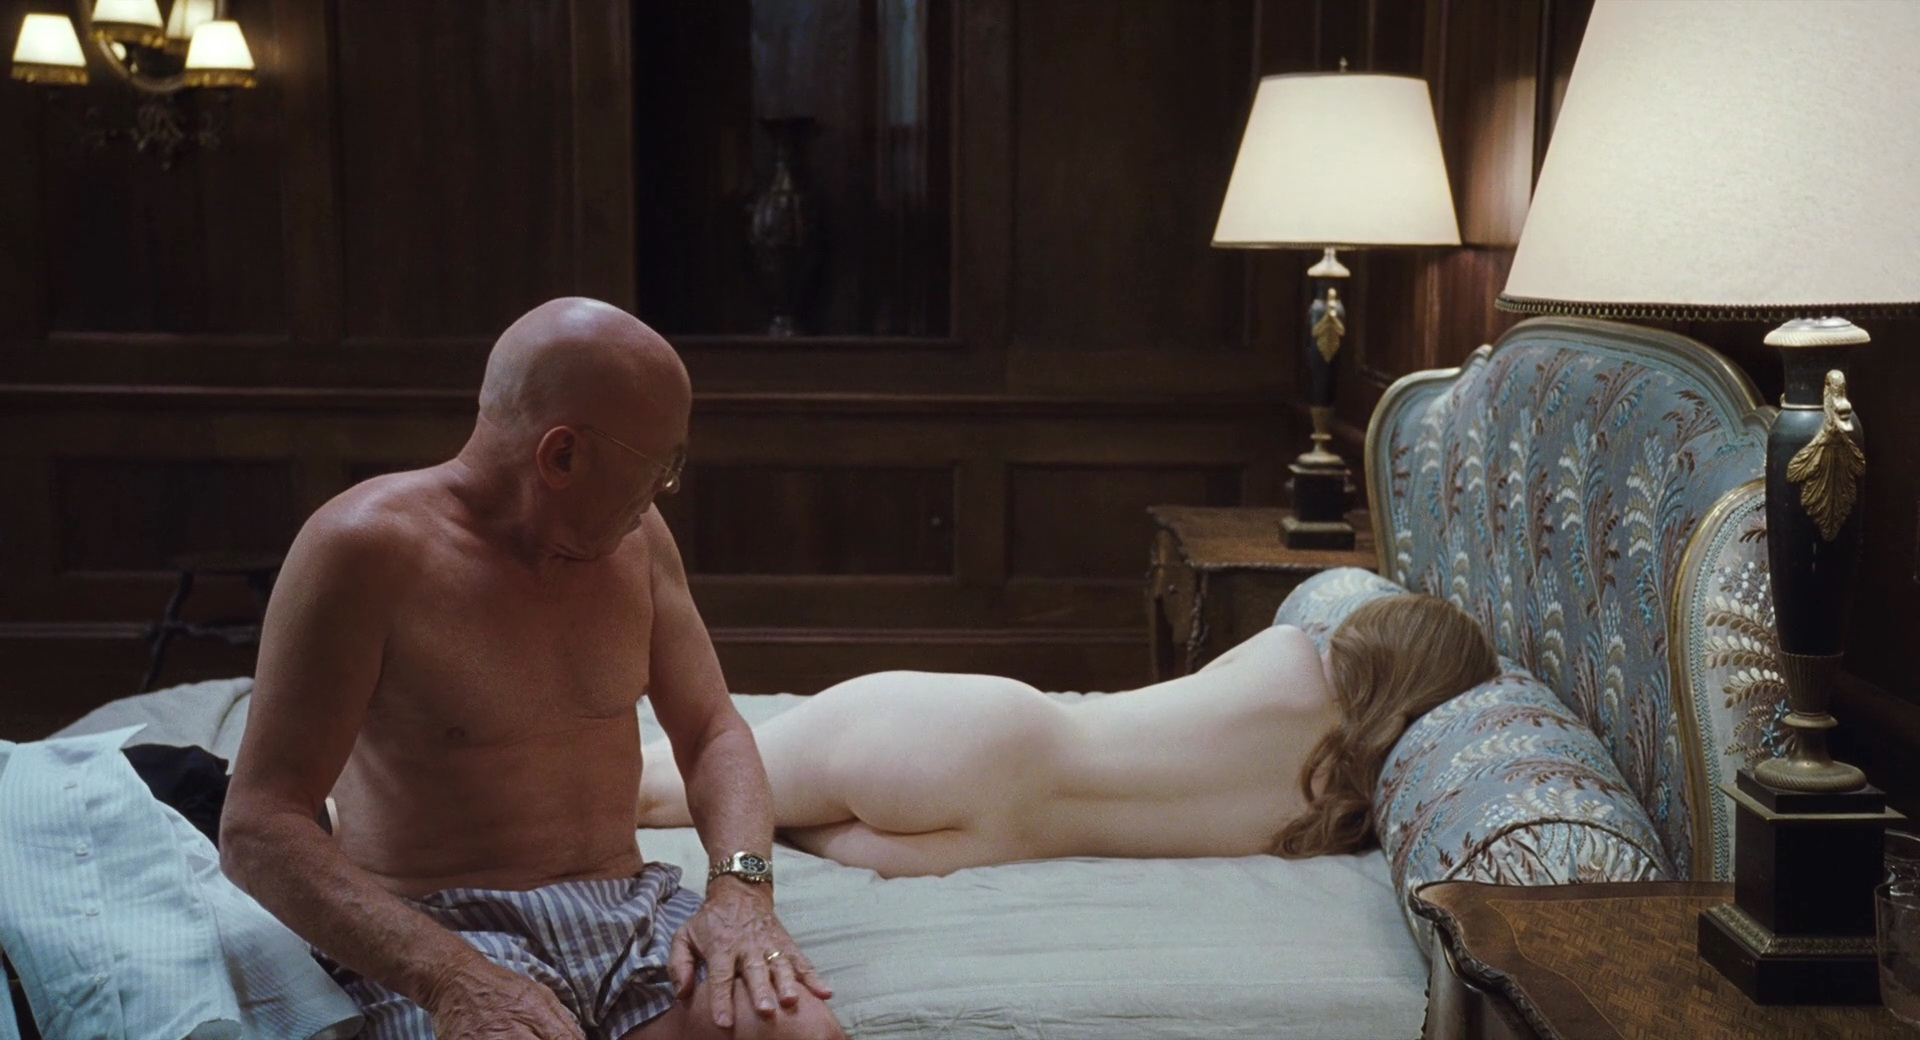 sleeping Emily browning nude